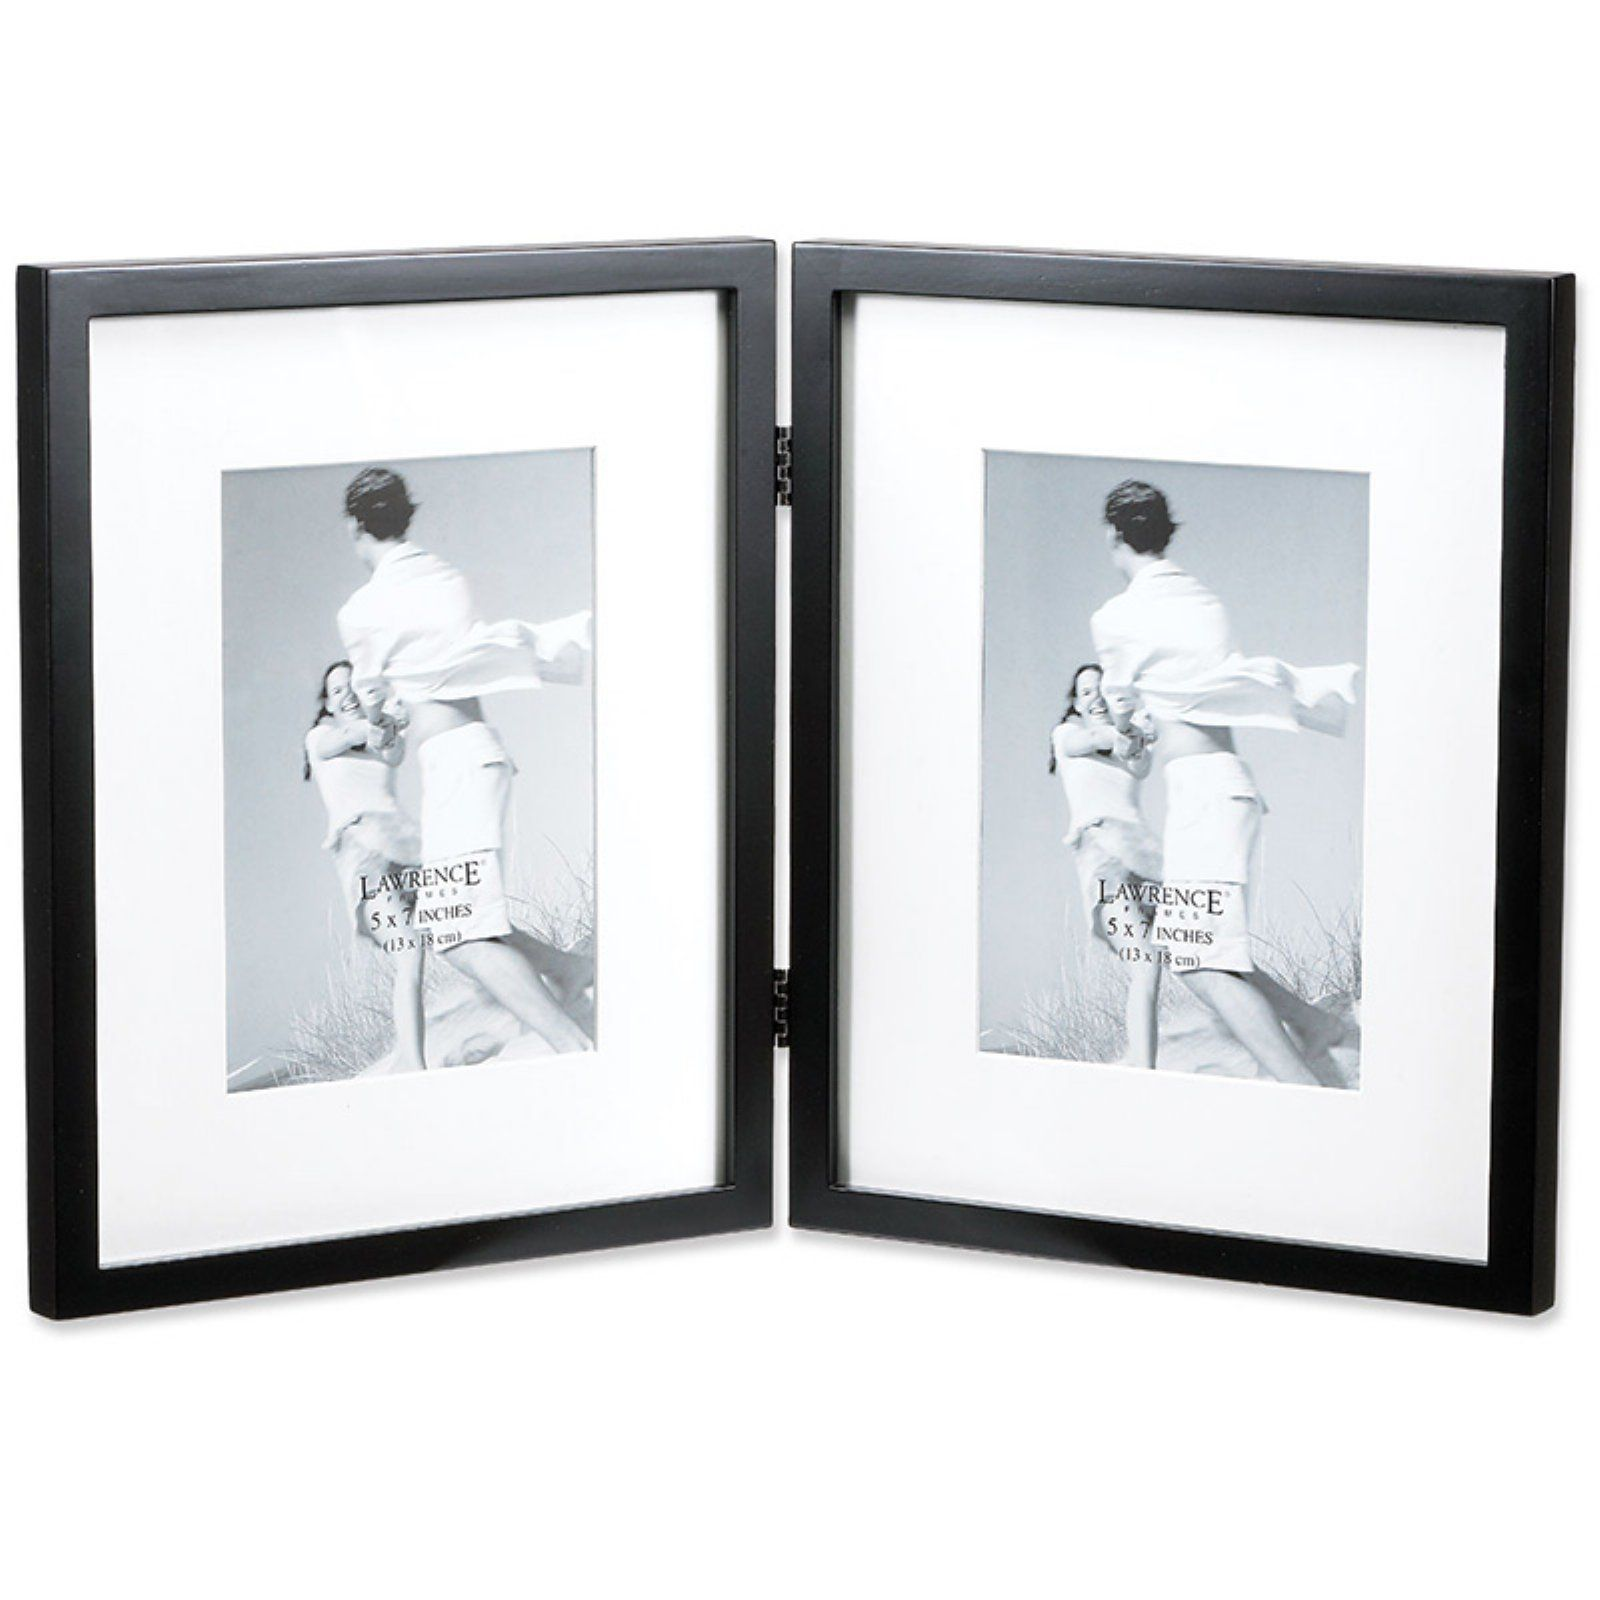 Lawrence Frames White Wood Picture Frame 10 by 10-Inch